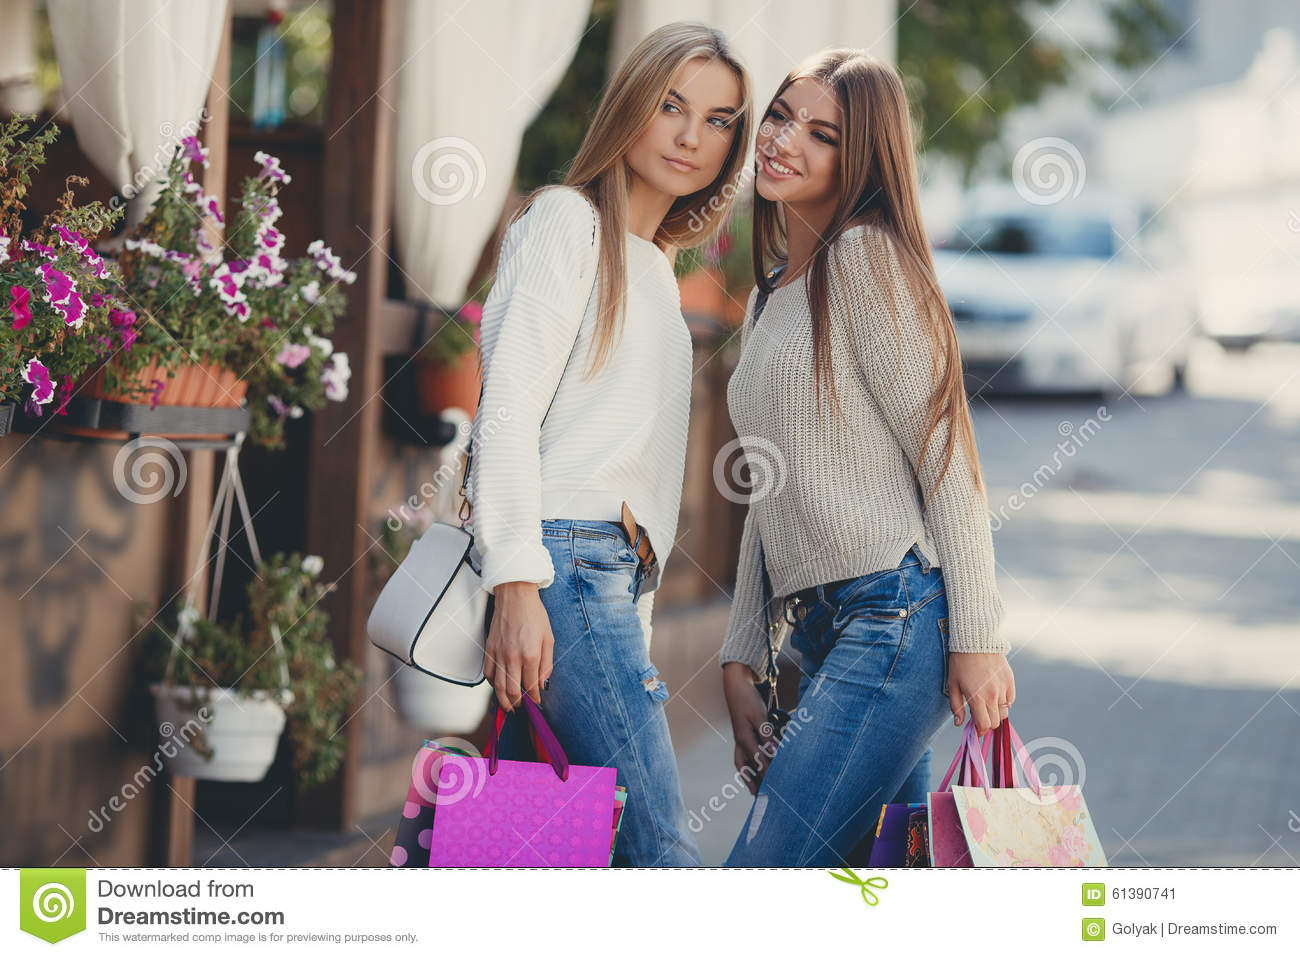 Narrative Essay on Whether You Enjoy Shopping